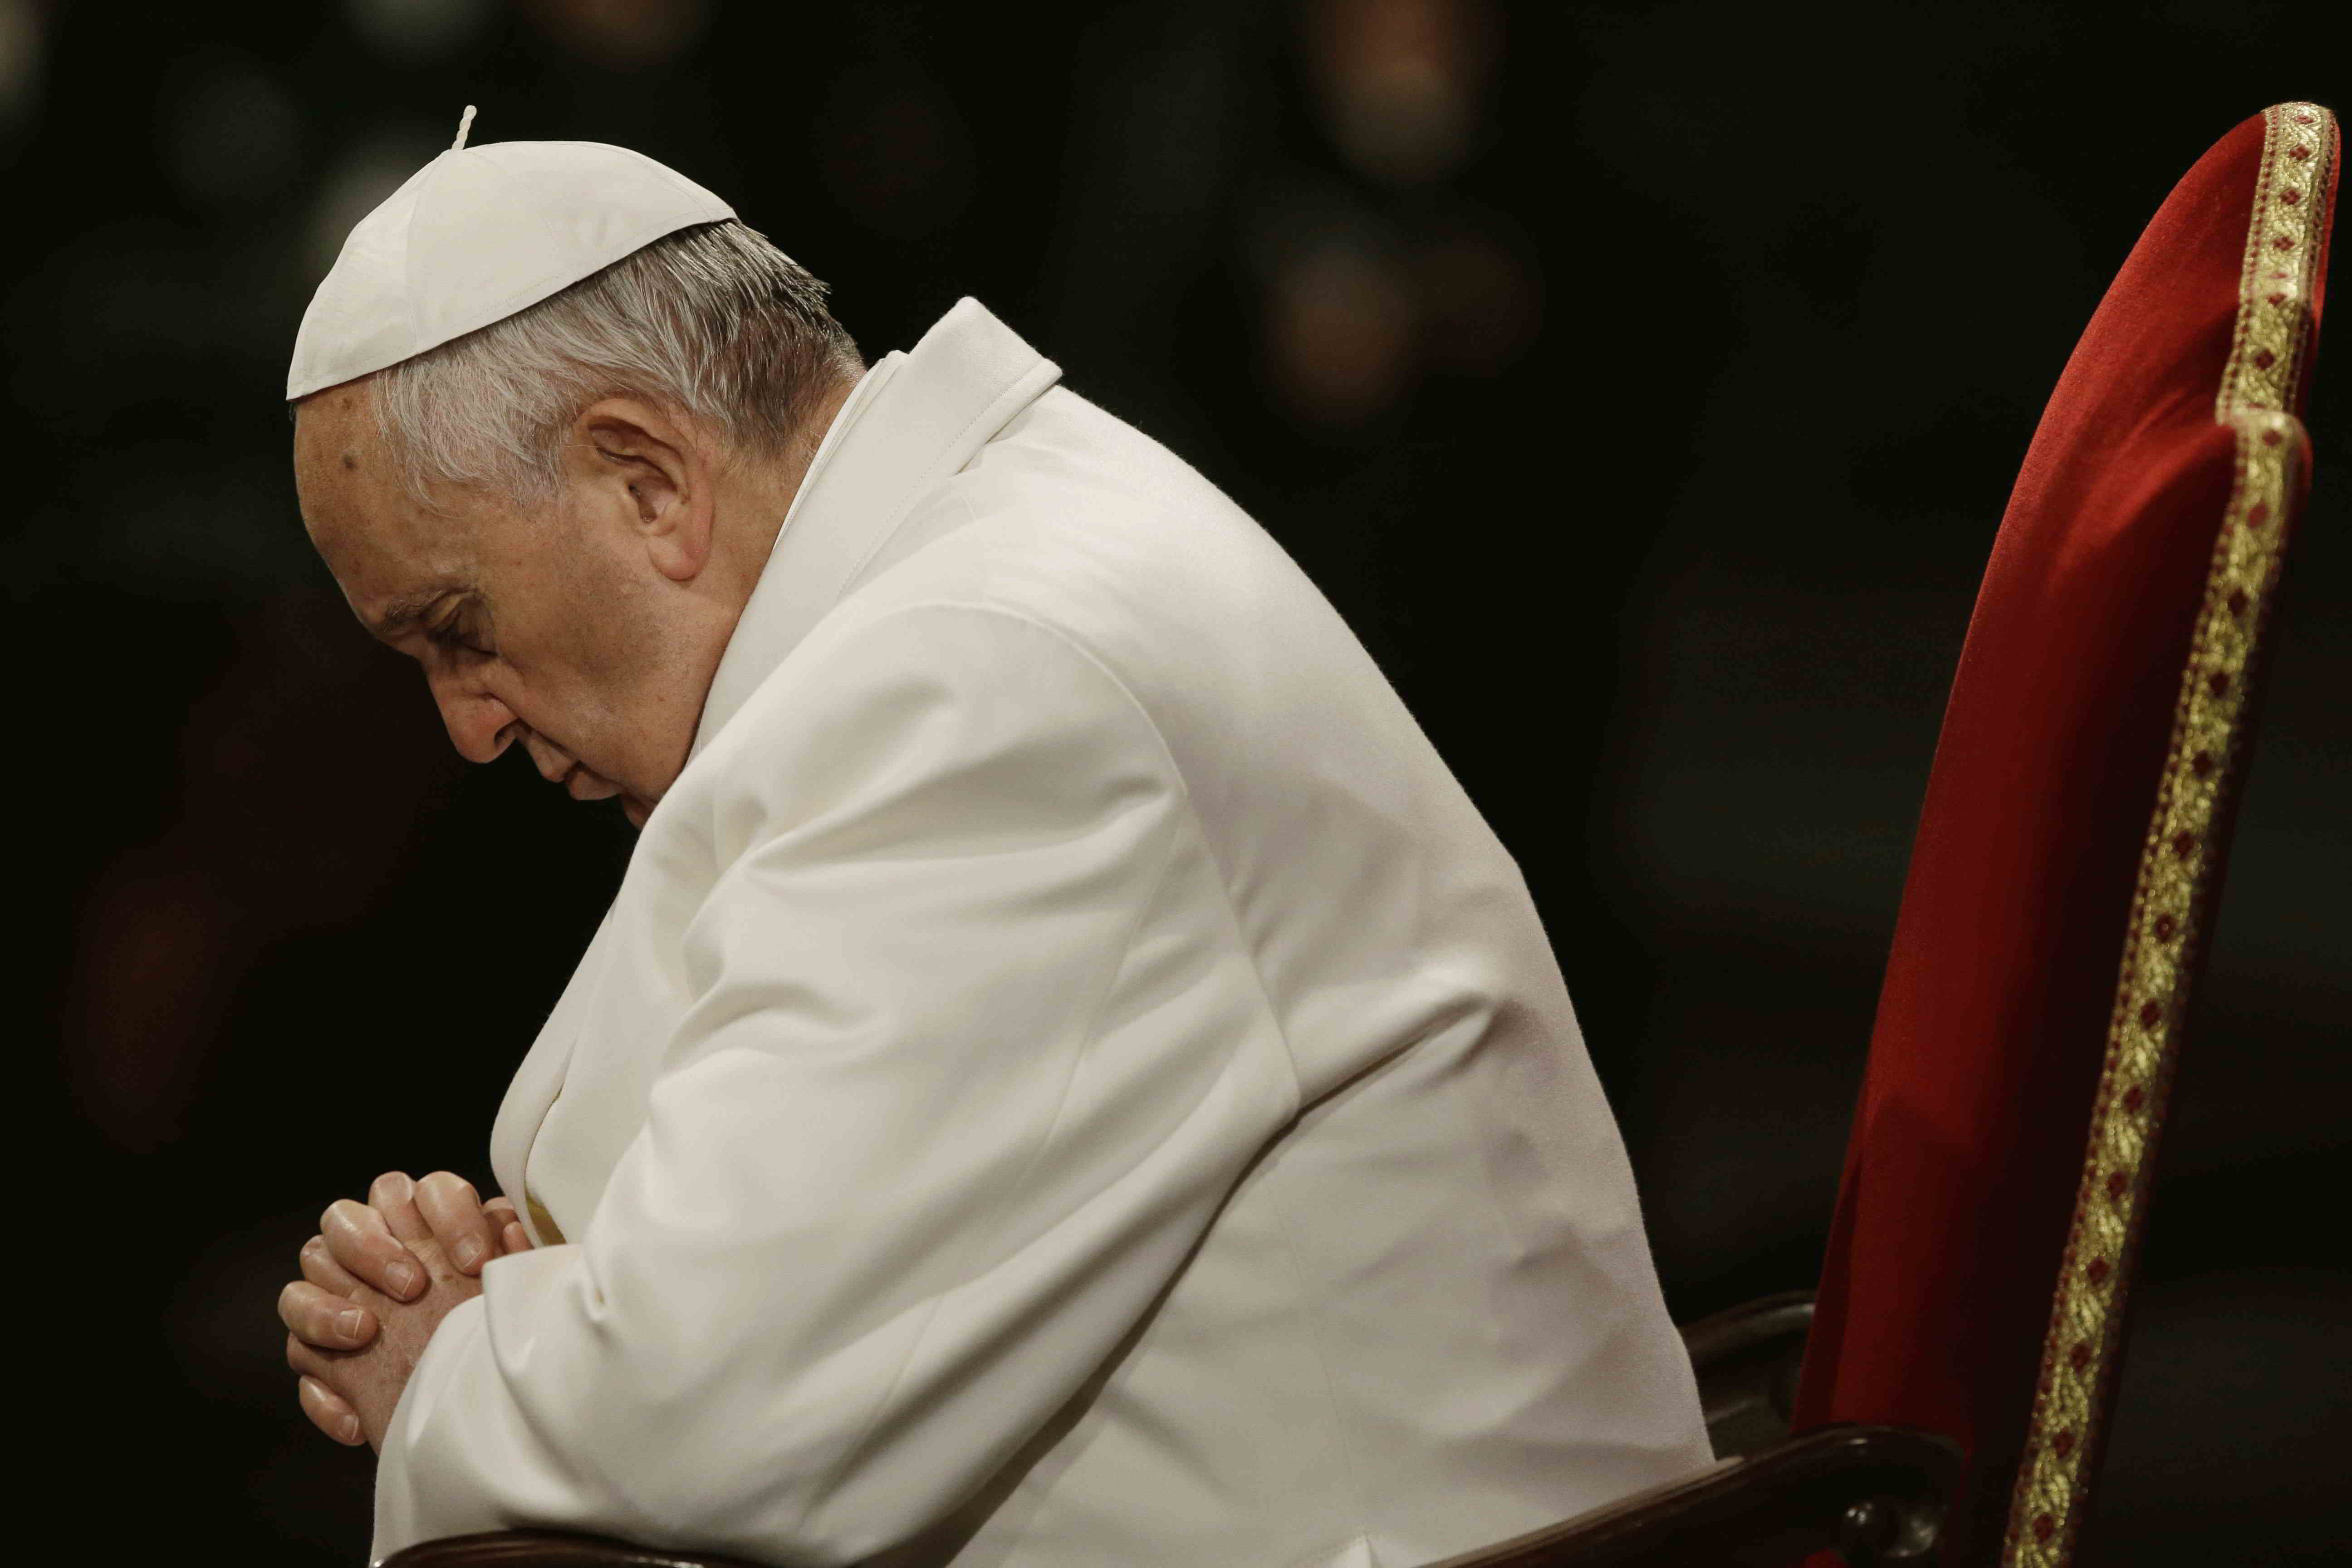 Pope Francis prays in front of the Colosseum during the Via Crucis (Way of the Cross) torchlight procession celebrated by Pope Francis on Good Friday in Rome, Friday, April 3, 2015. (AP Photo/Gregorio Borgia)